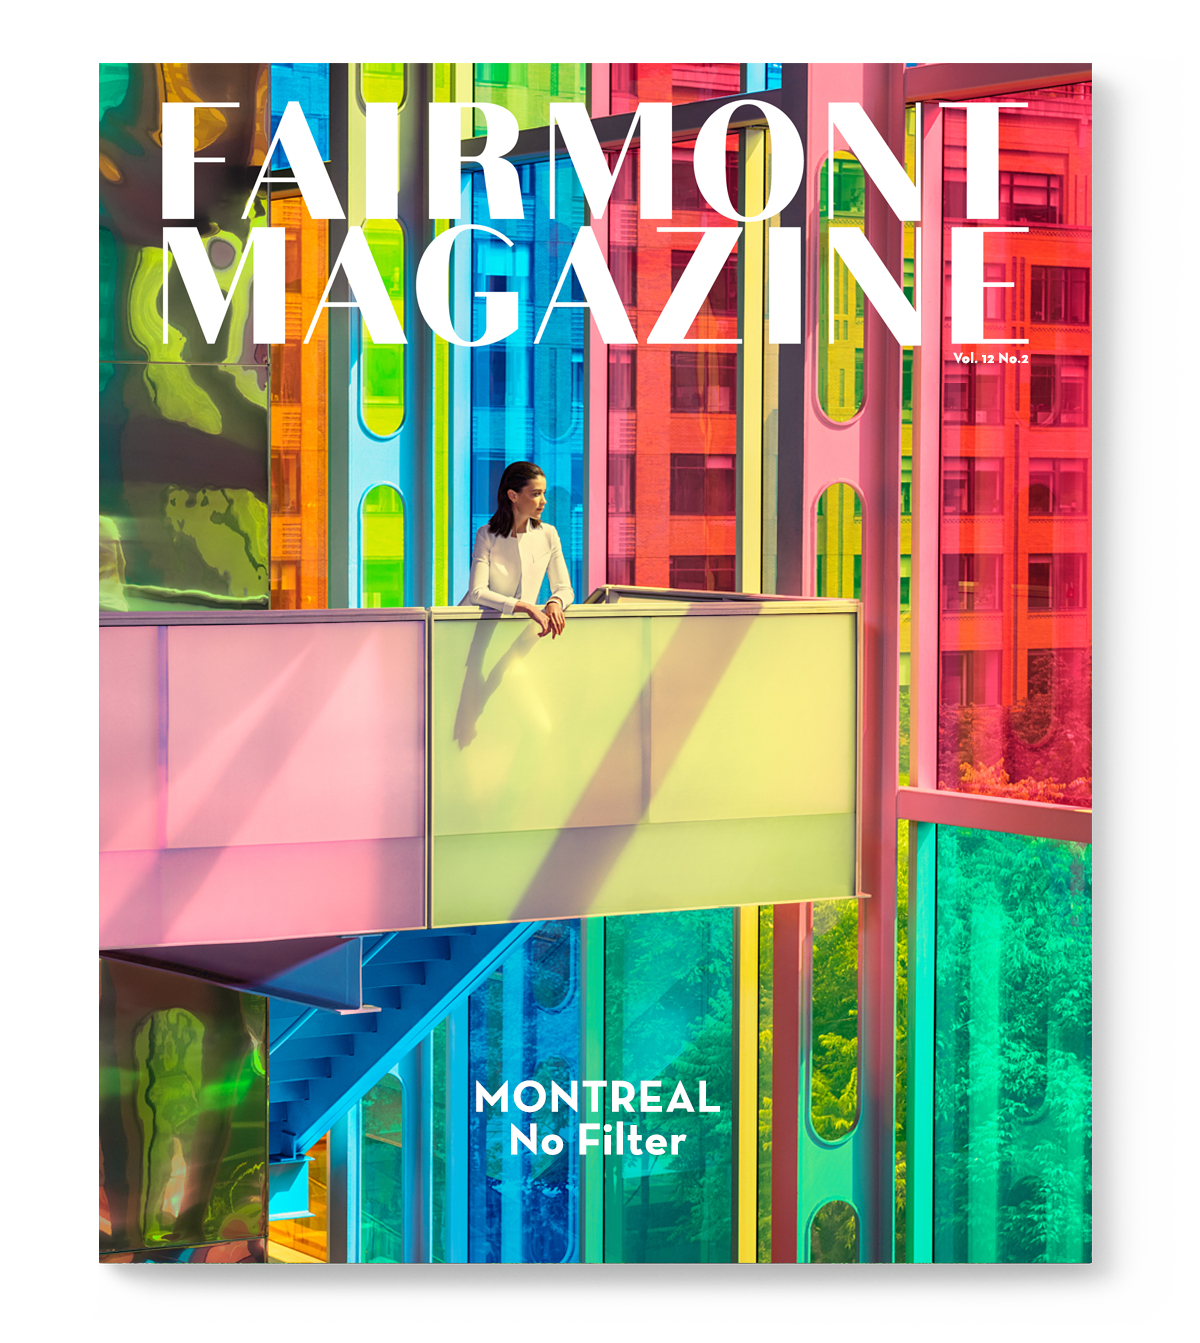 Creative Direction, Art Direction and Design for Fairmont Hotels Magazine (Branded Editorial Content) by Guillaume Brière (Montreal / Toronto-based creative director)